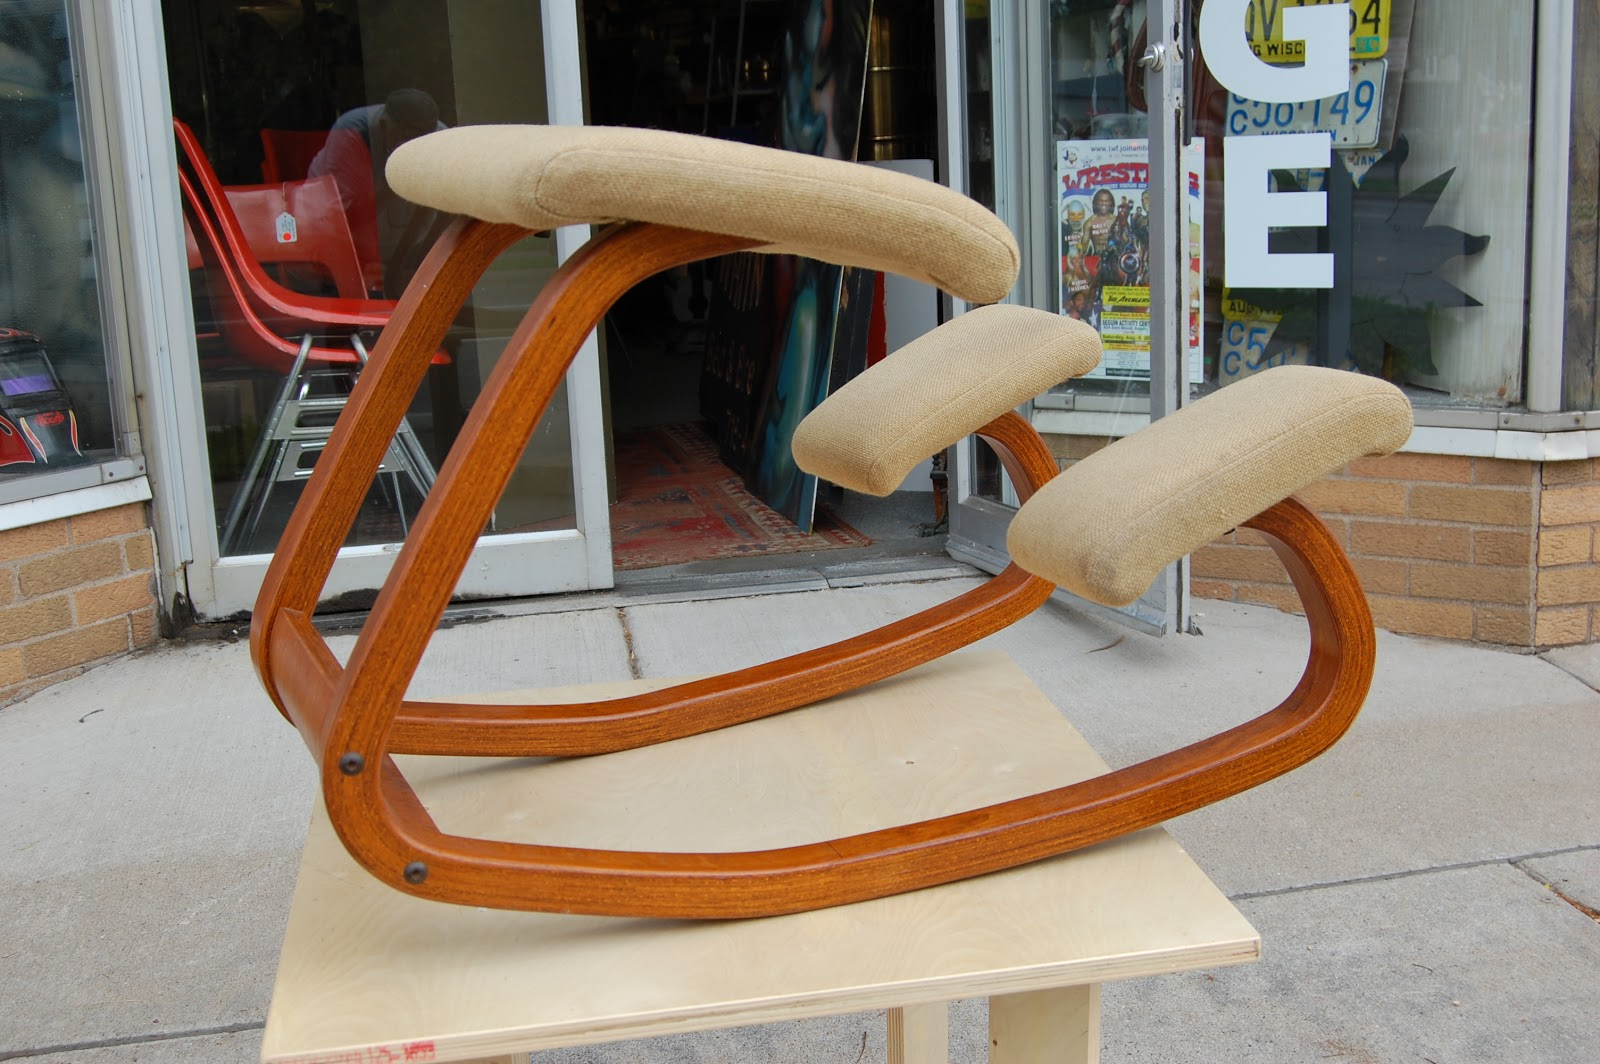 Ergonomic Chair Stokke Varier Thatsit Cover Express Long Beach Hazel Home Art And Antiques Wausau Wisconsin Rethinking